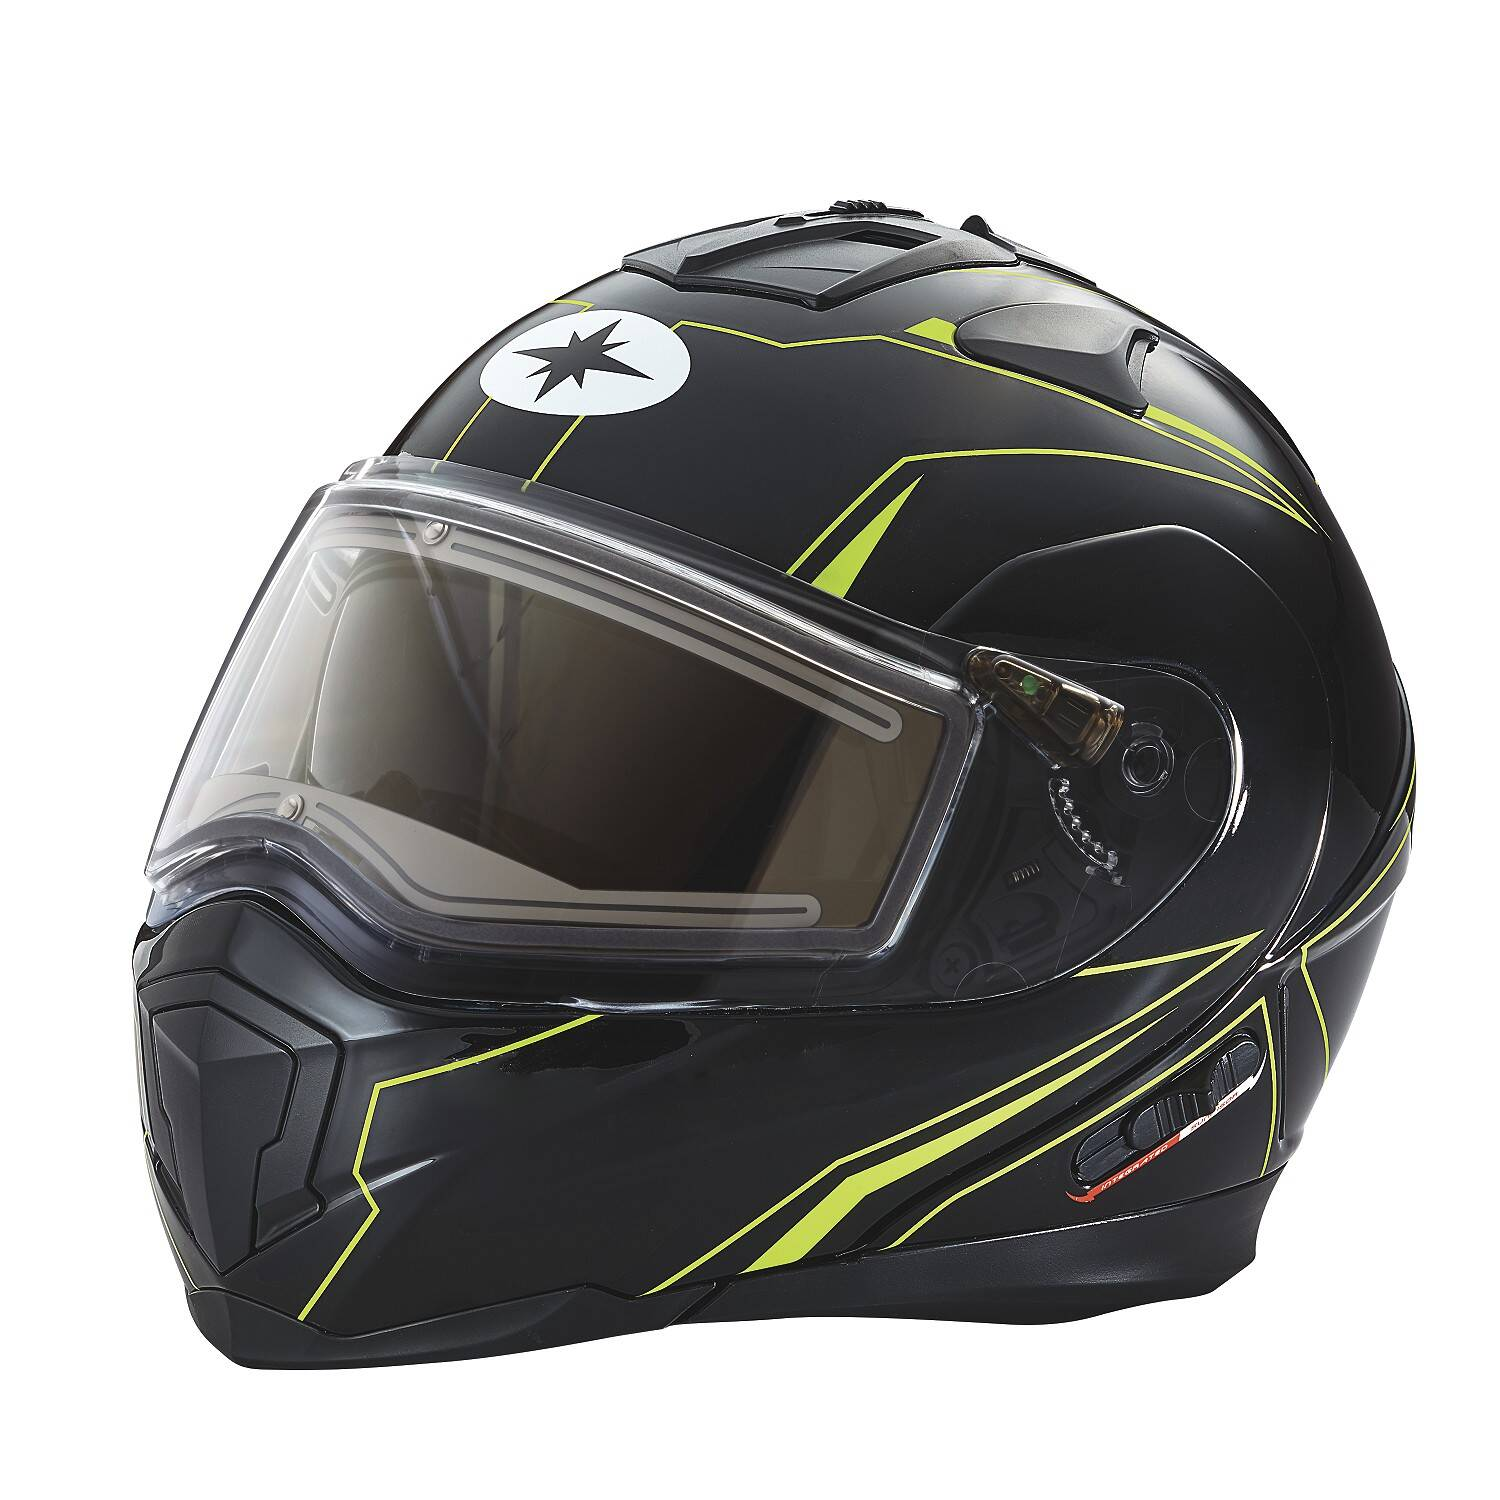 Modular 2.0 Adult Helmet with Electric Shield, Black/Lime